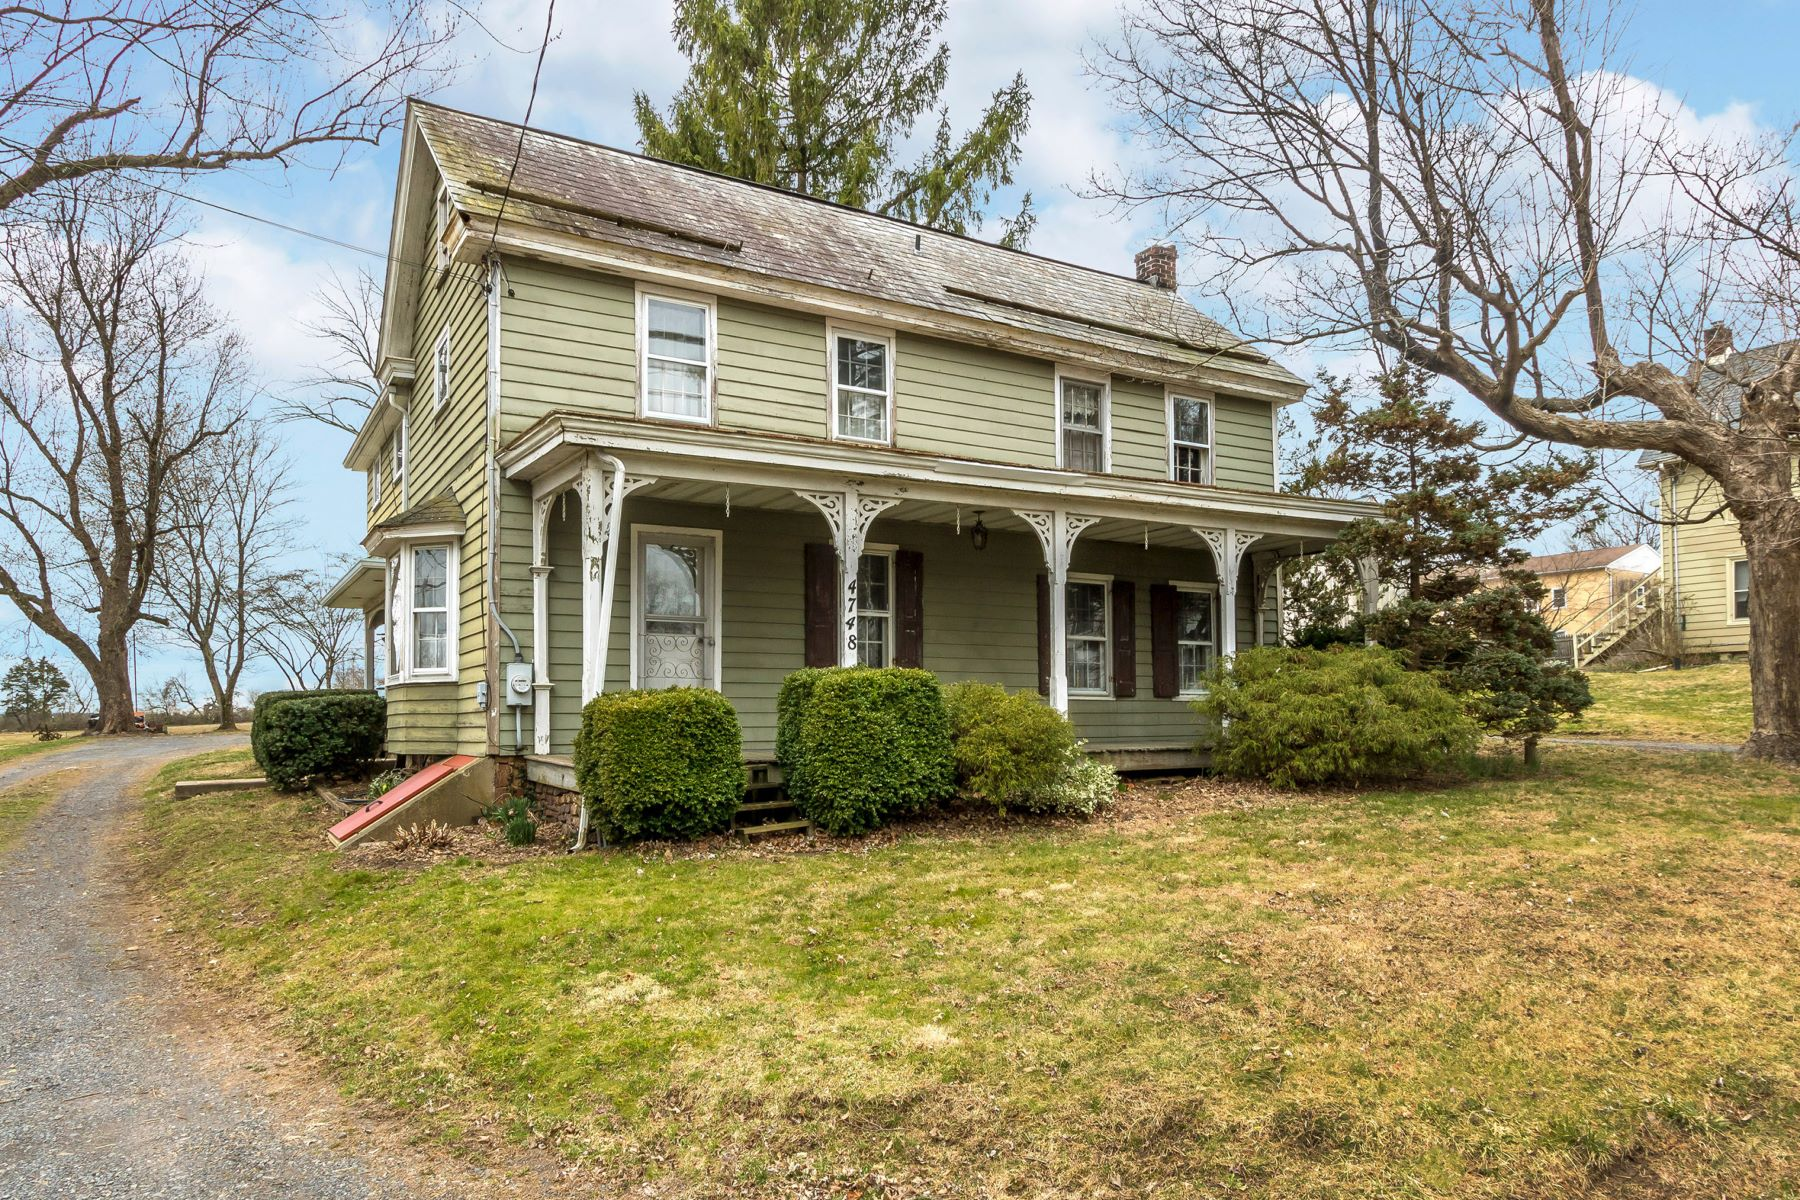 Single Family Homes for Sale at 4748 OLD EASTON RD Doylestown, Pennsylvania 18901 United States